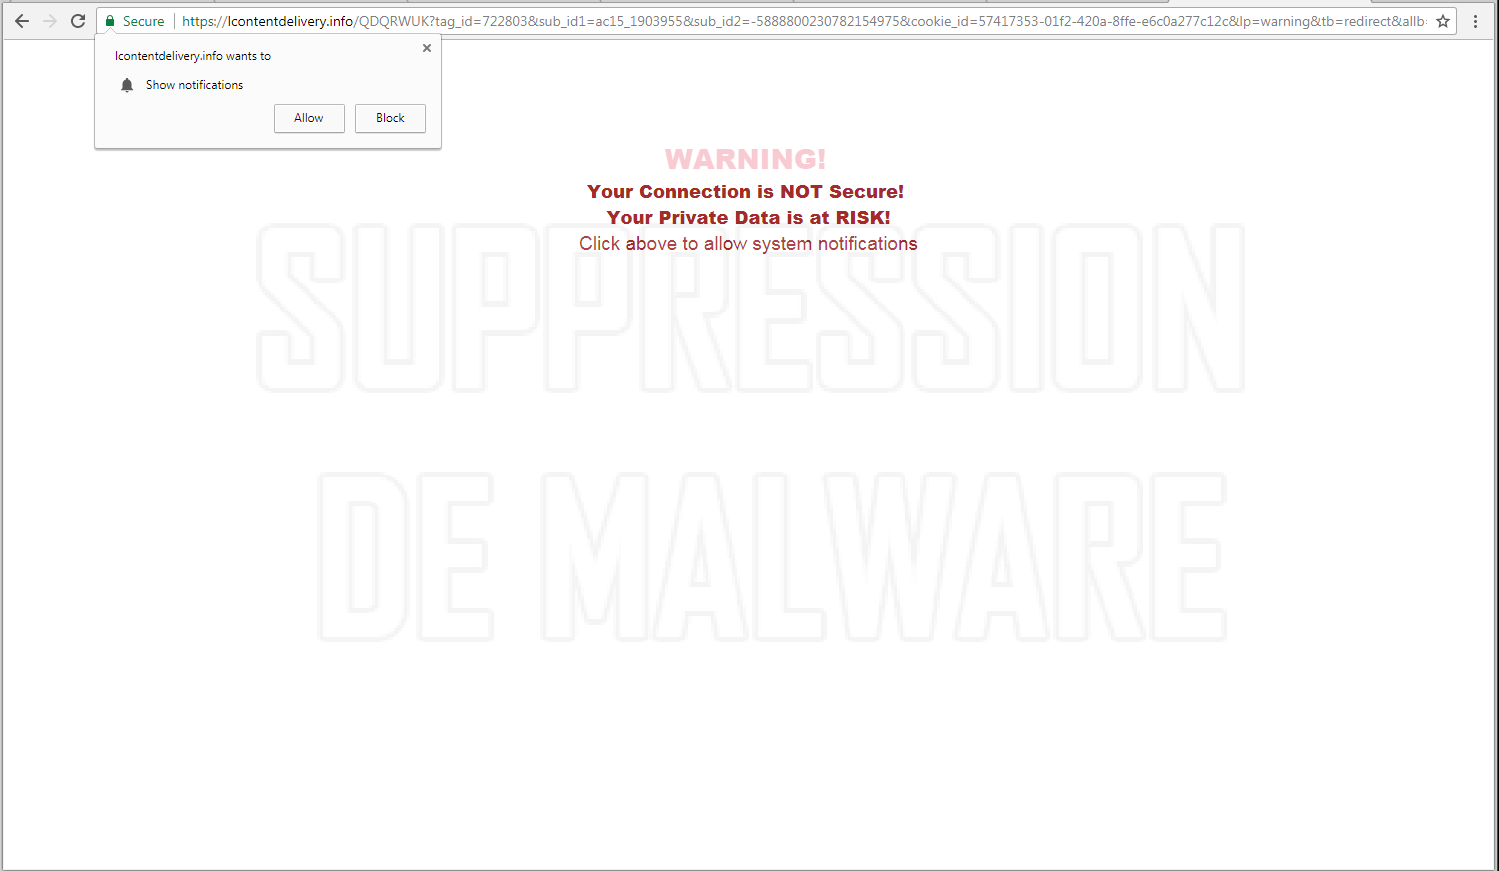 Lcontentdelivery.info virus